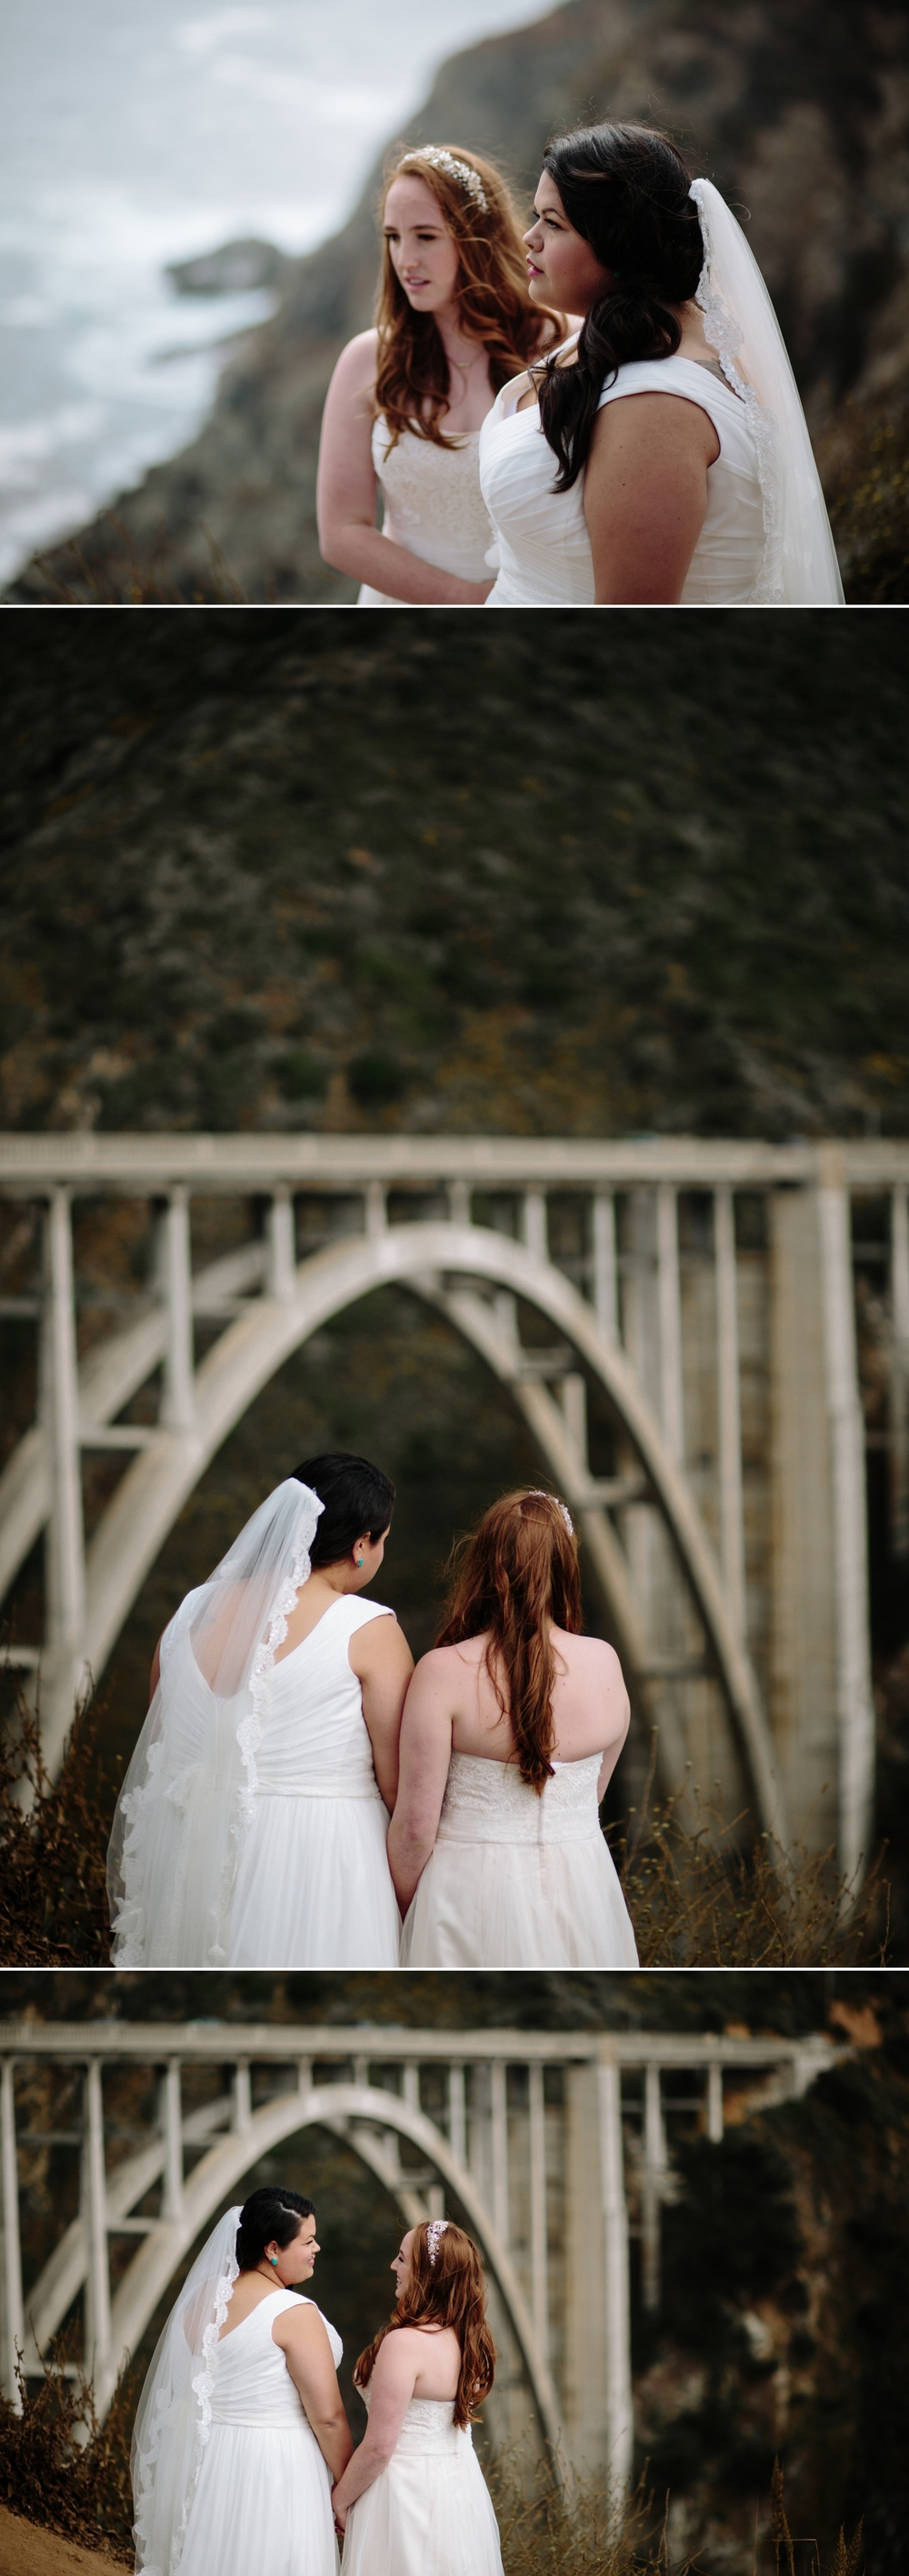 Lesbian elopement in Big Sur by San Diego photographer Paige Nelson